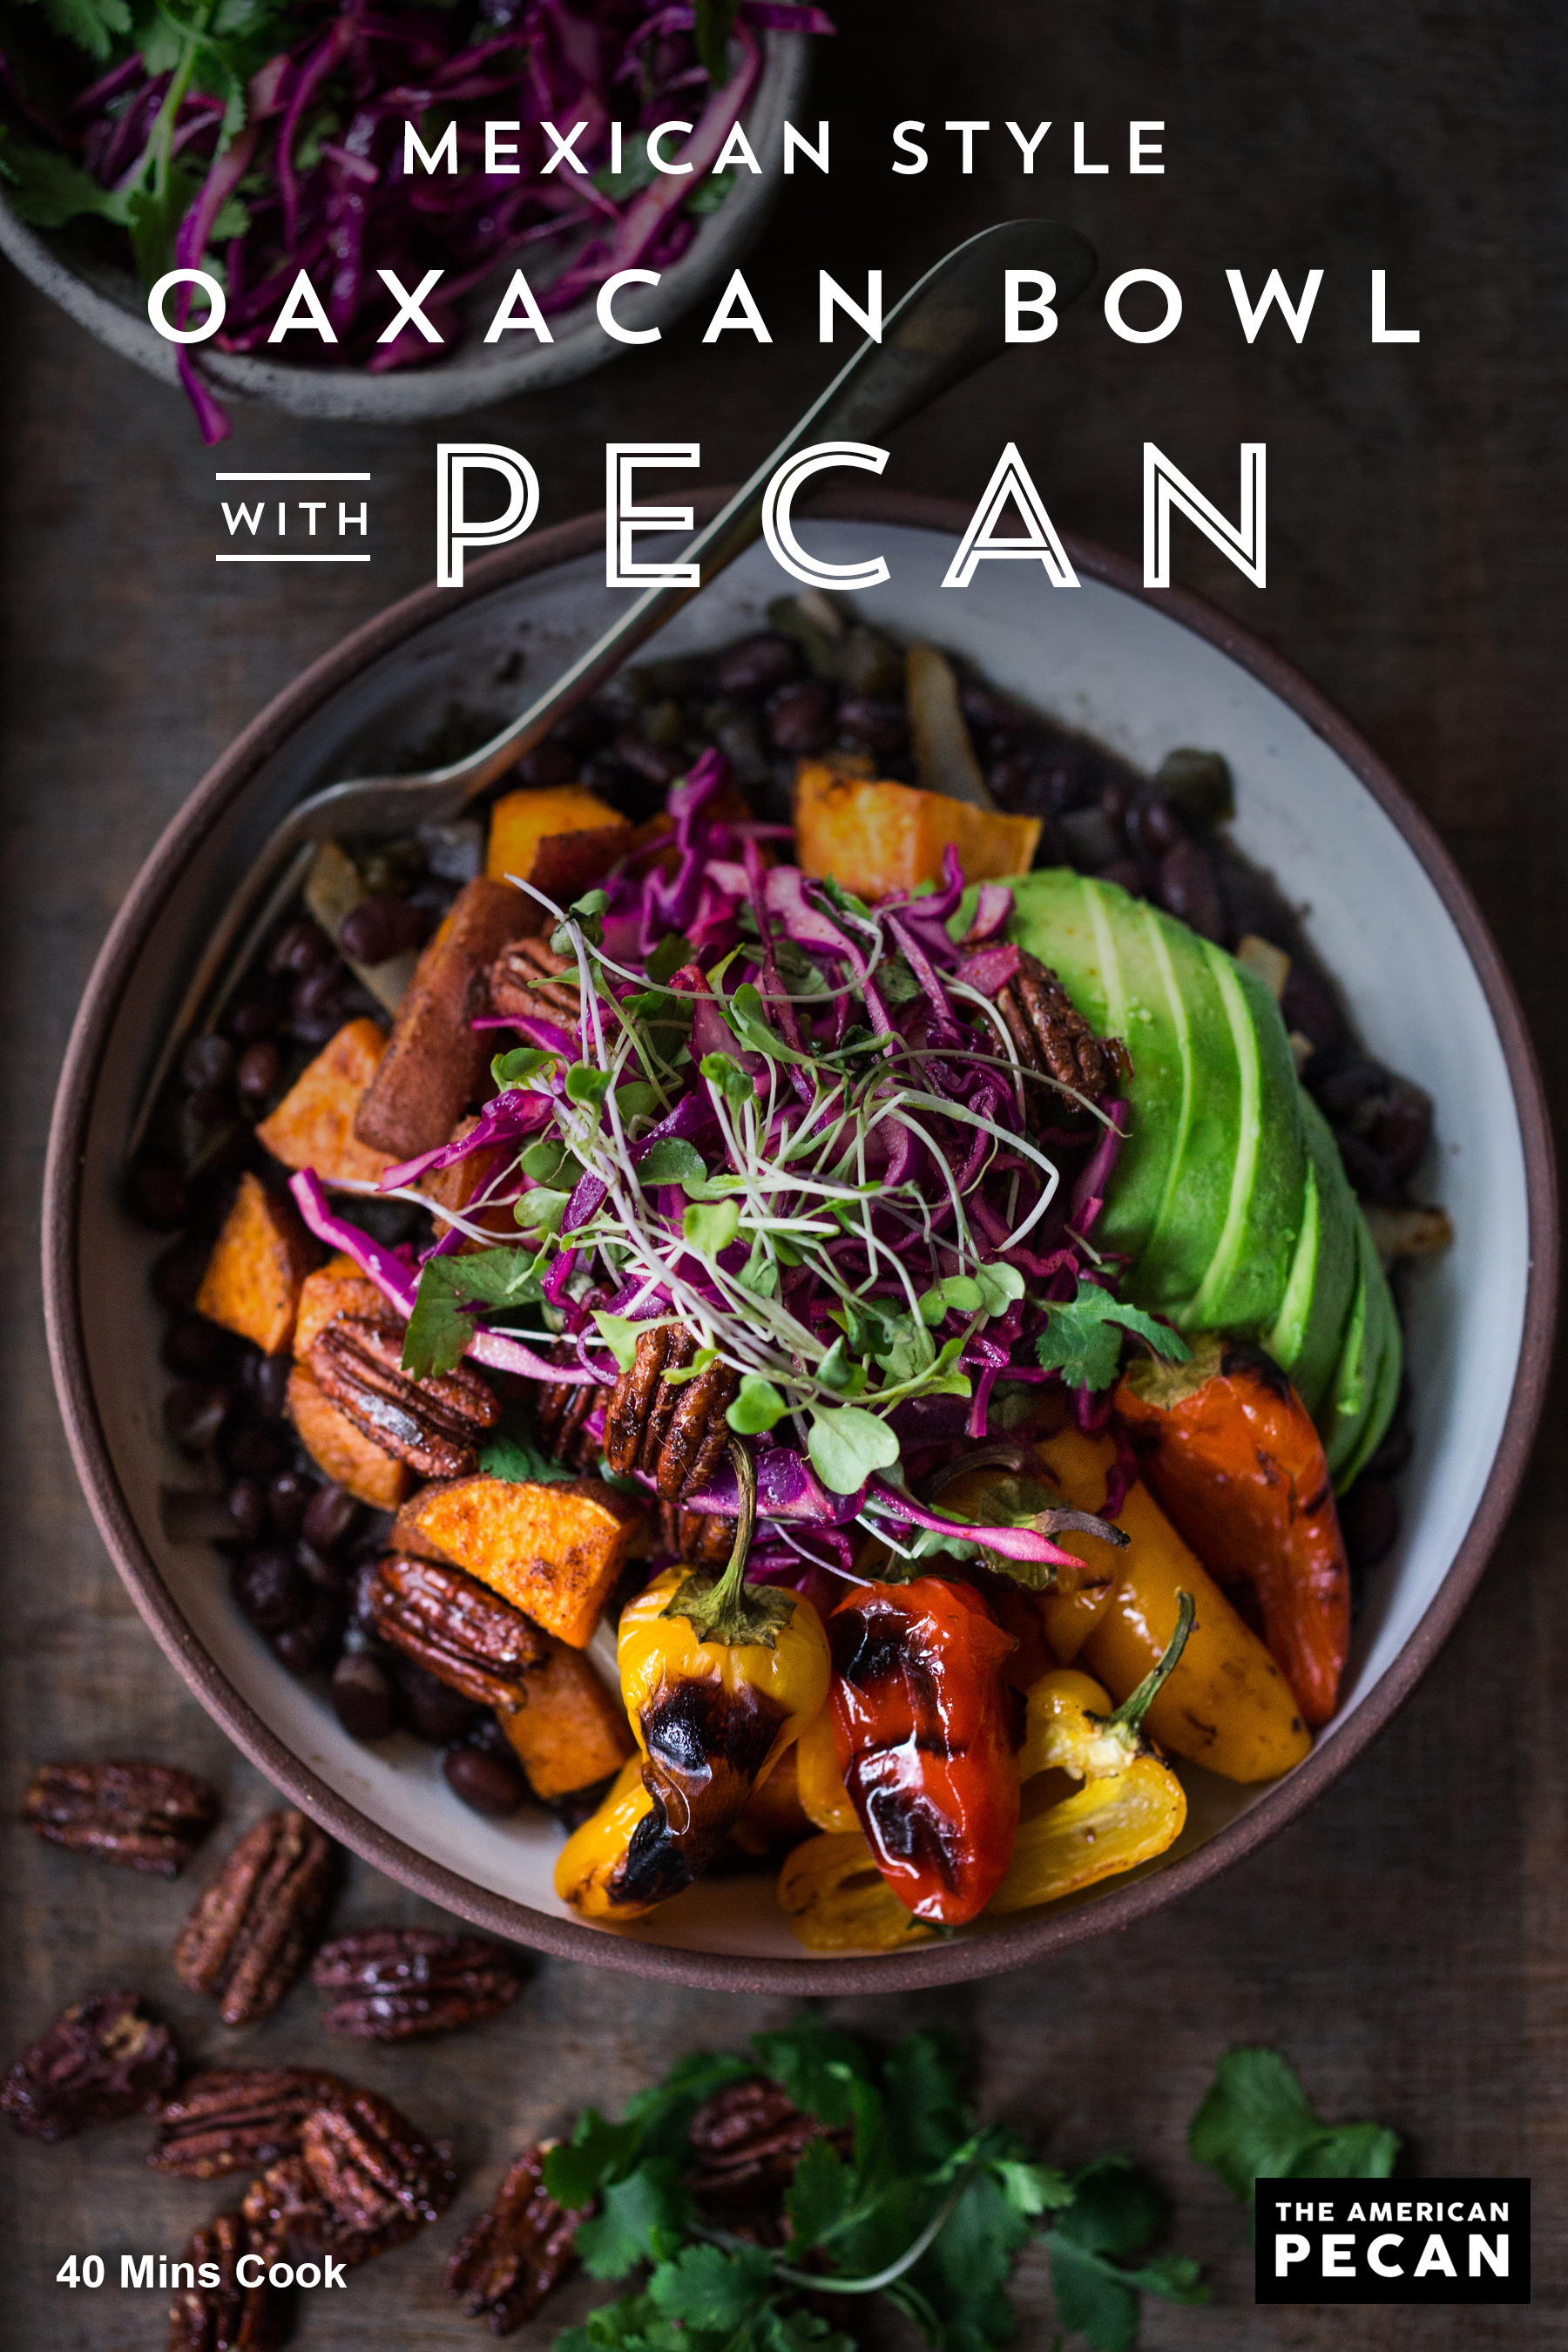 Mexican style oaxacan bowl with pecans receta pinterest mexican style oaxacan bowl with pecans receta pinterest recetas deliciosas comida deliciosa y hambre forumfinder Image collections